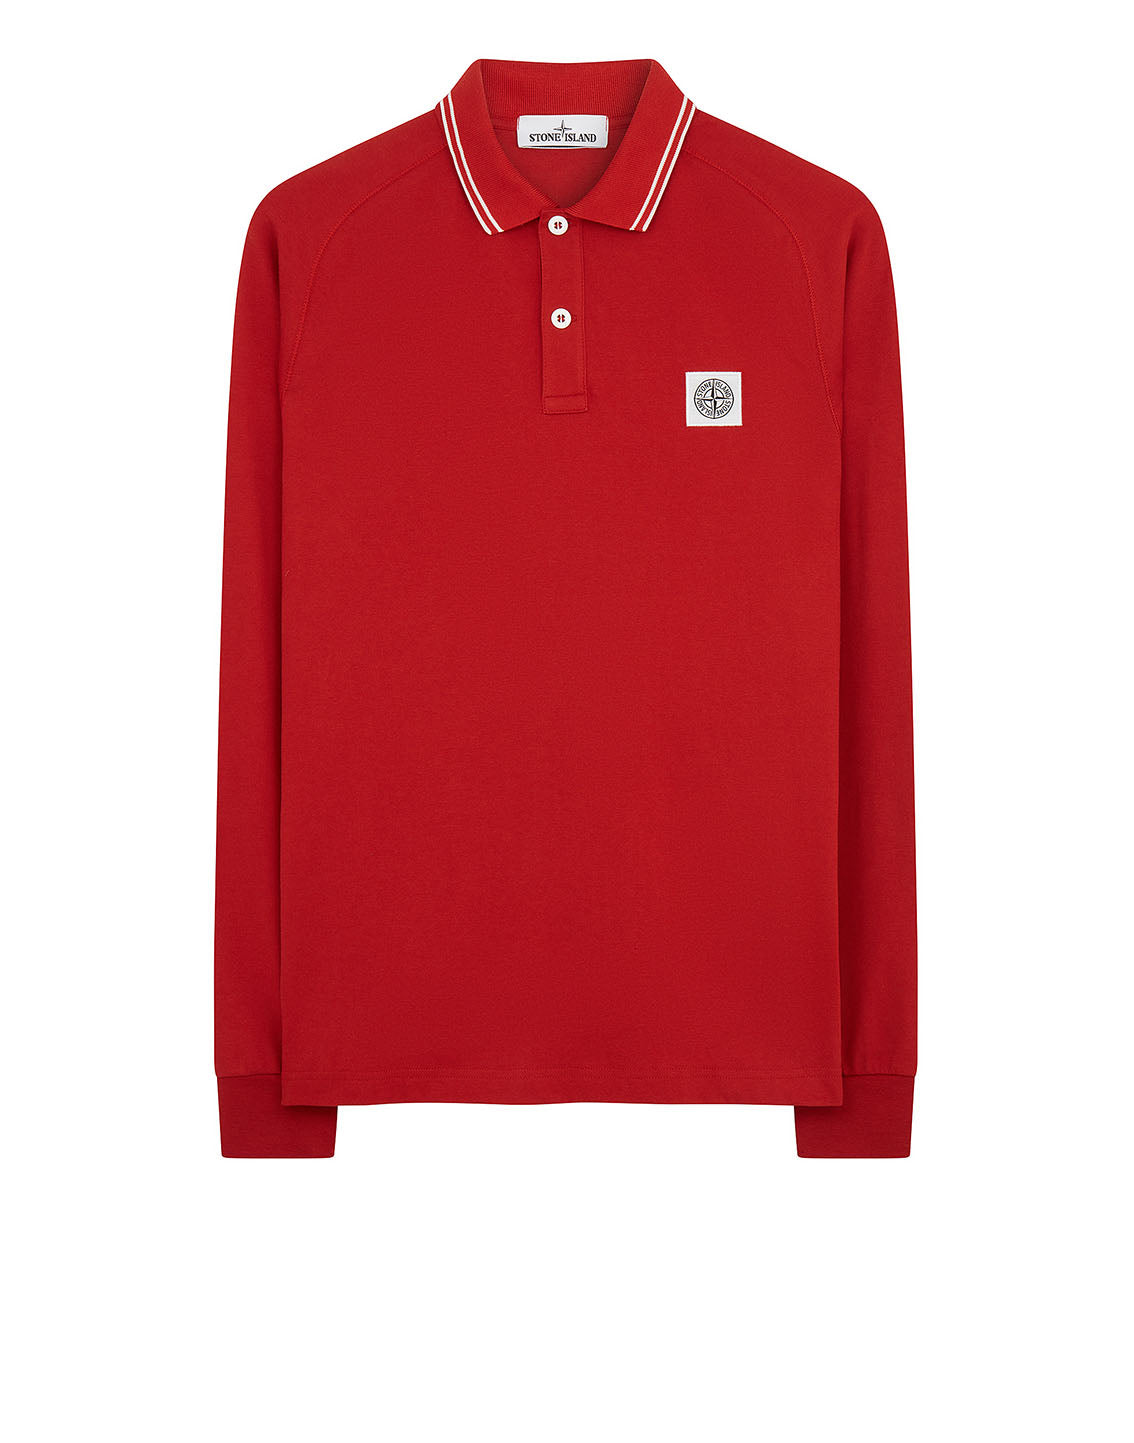 22016 Long Sleeve Polo Shirt in Red